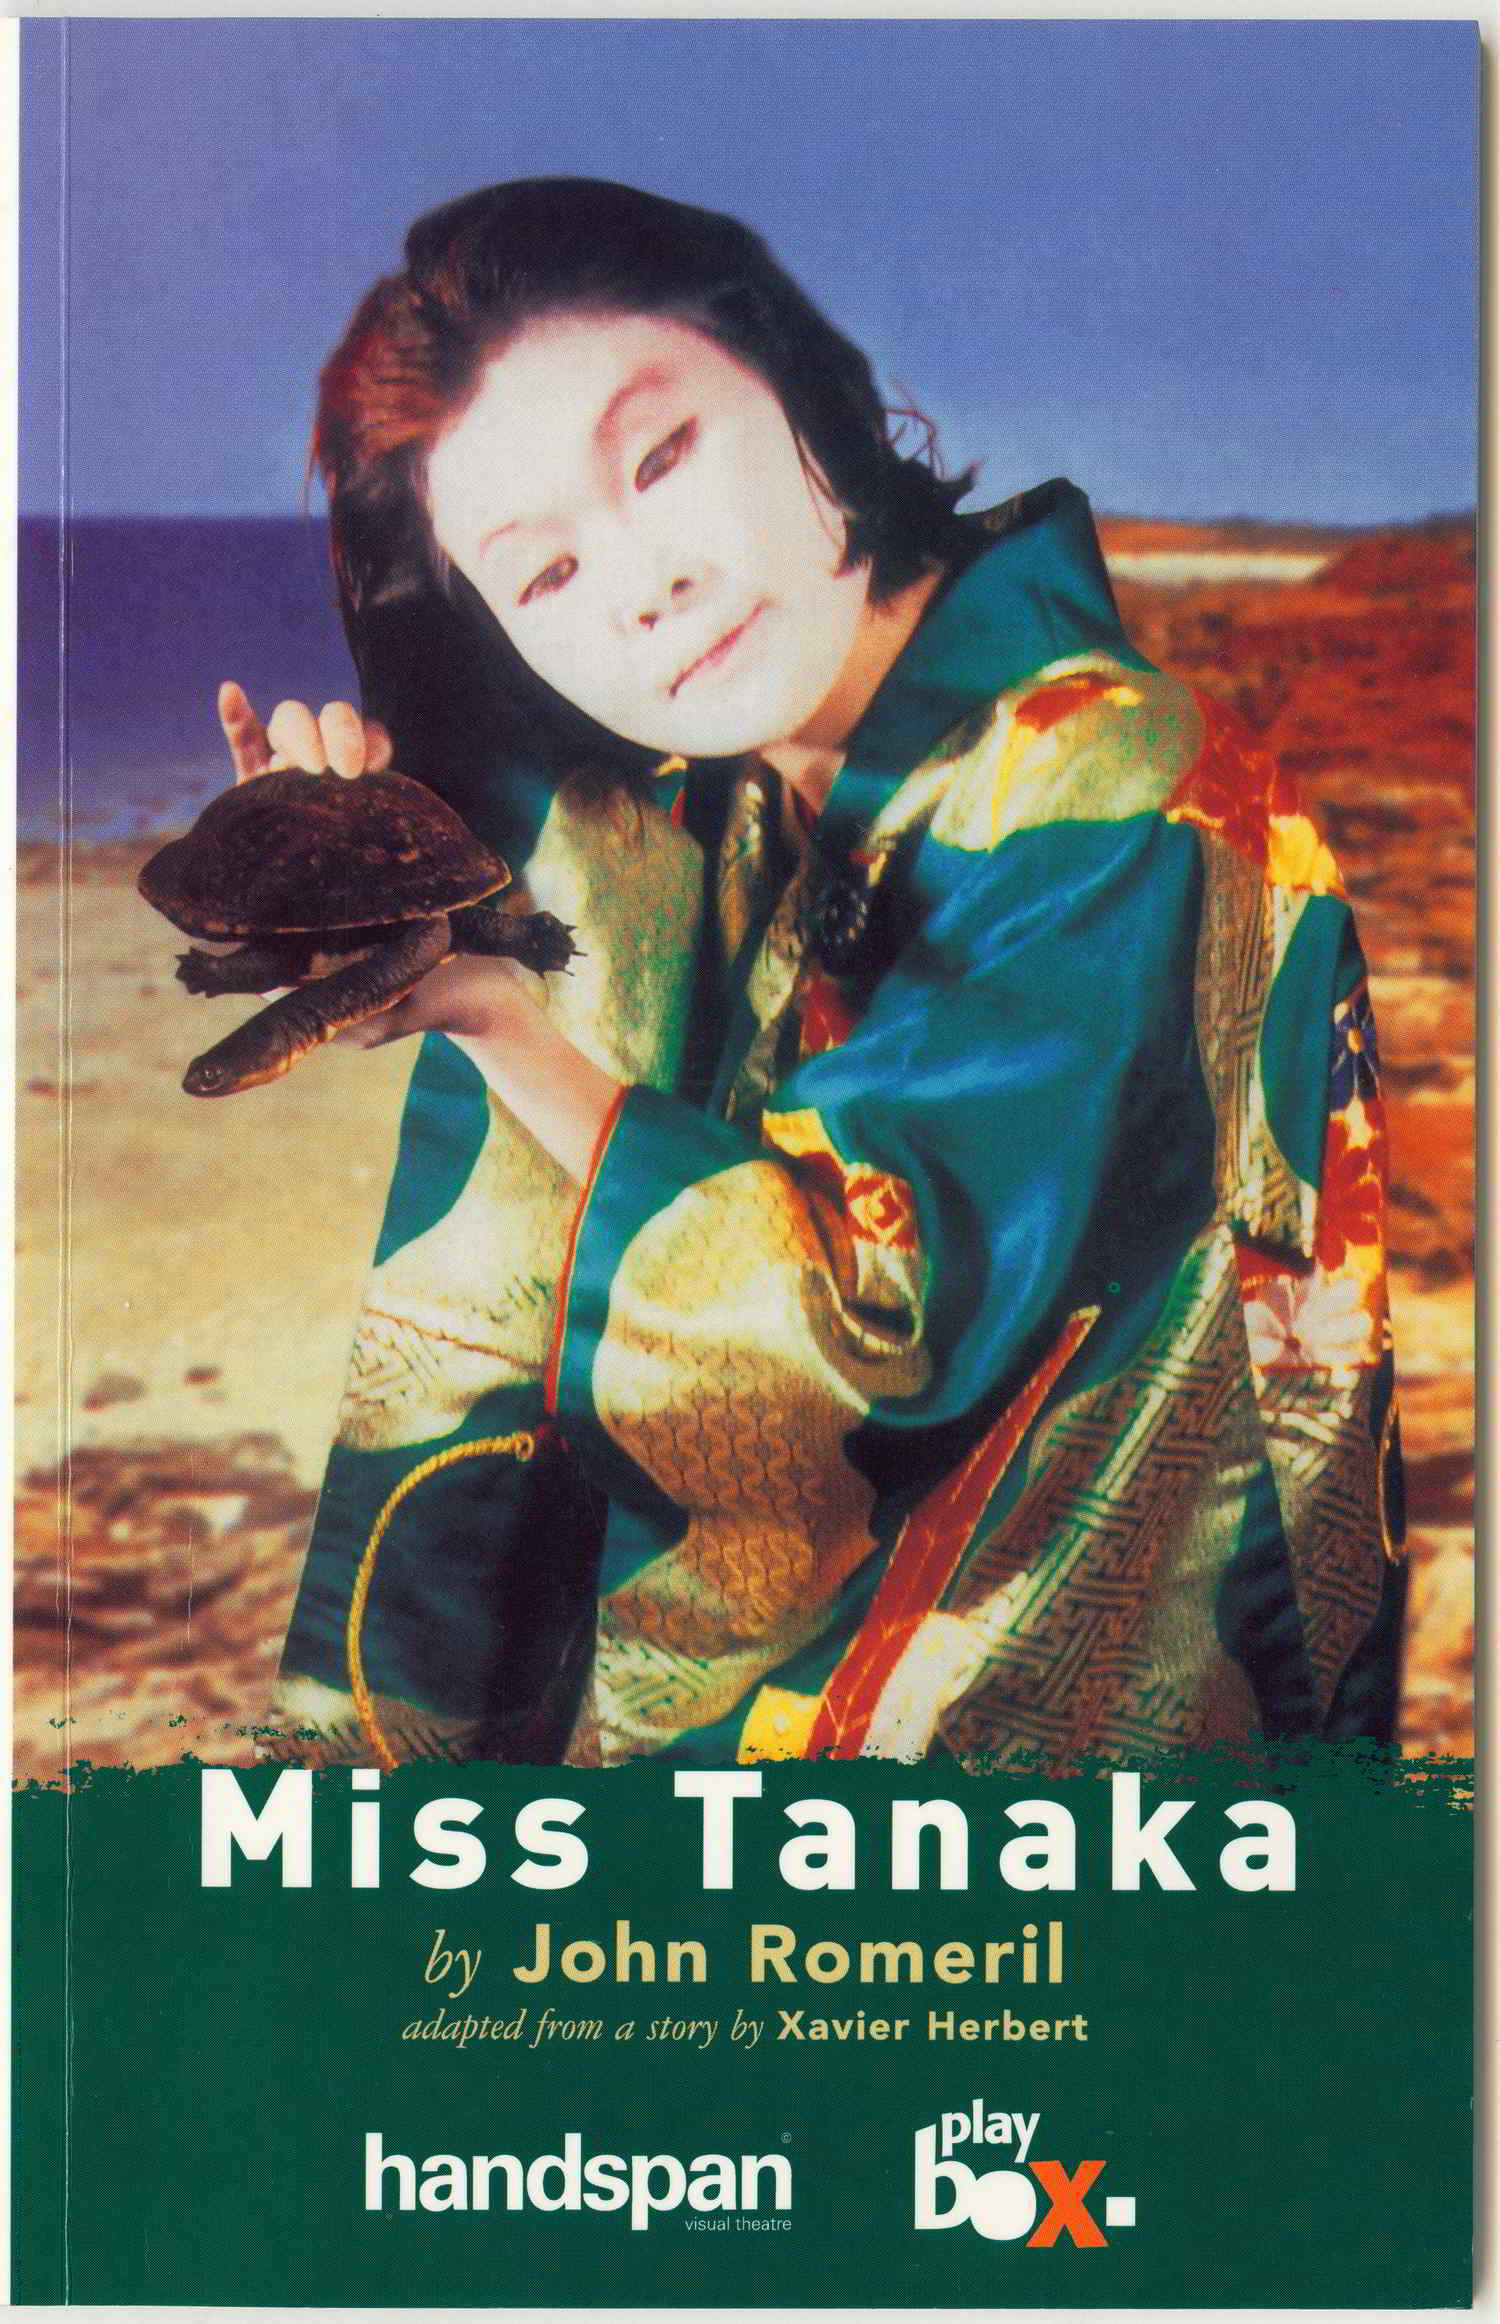 Miss Tanaka Handspan/Playbox painting of a girl in traditional Japanese dress holding a turtle on a beach with printed show credits below